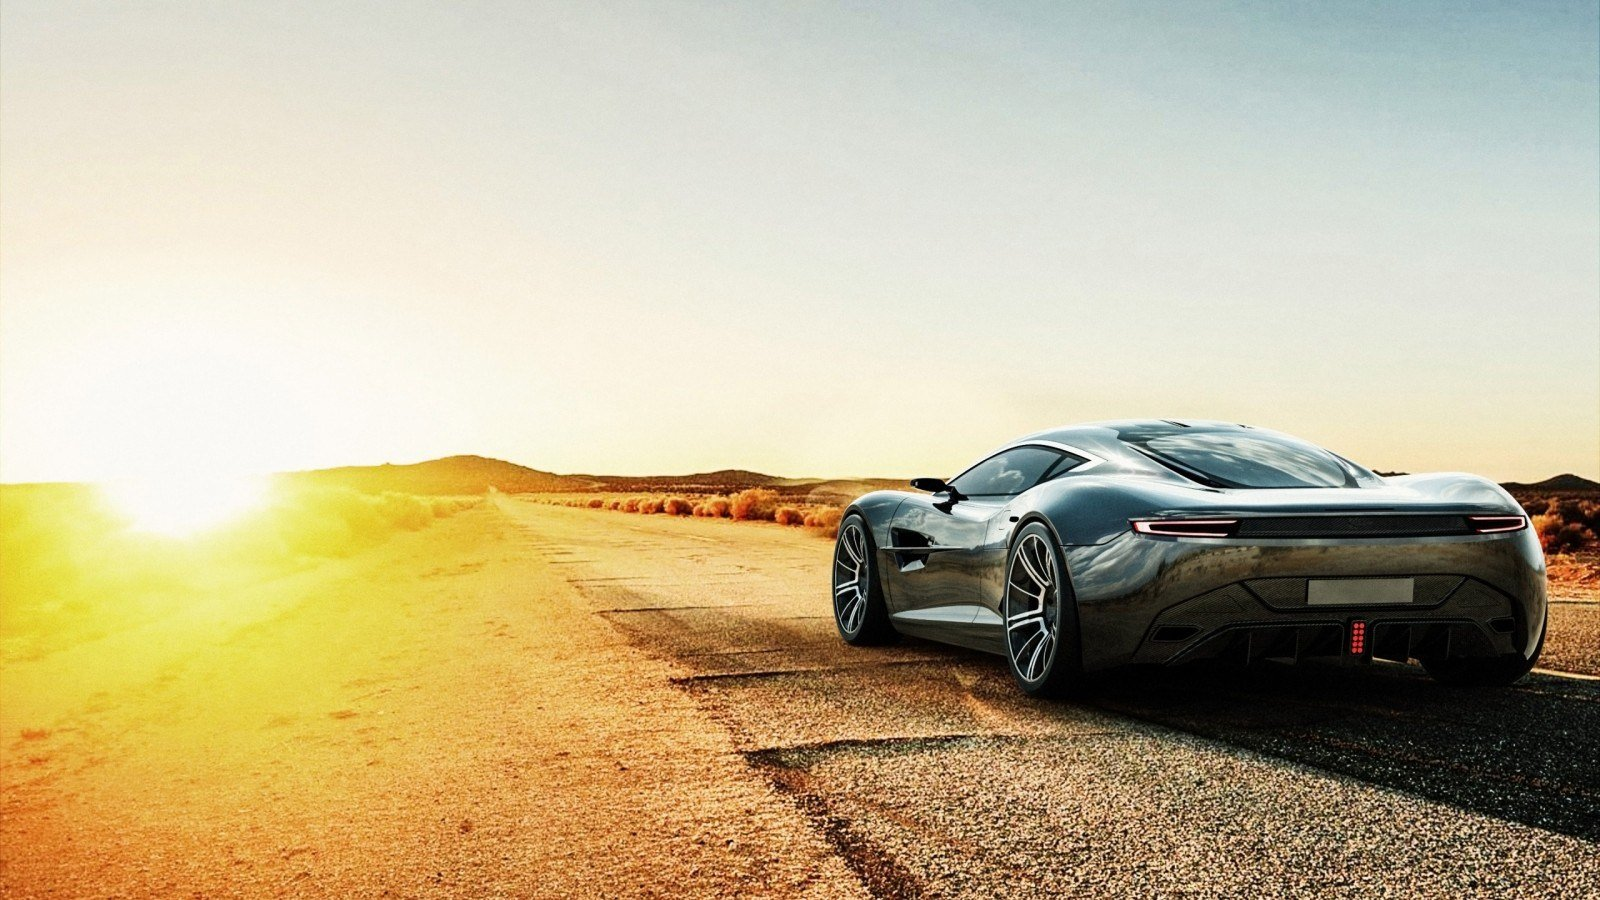 Latest 2013 Aston Martin Dbc Concept 6 Wallpaper Hd Car Free Download